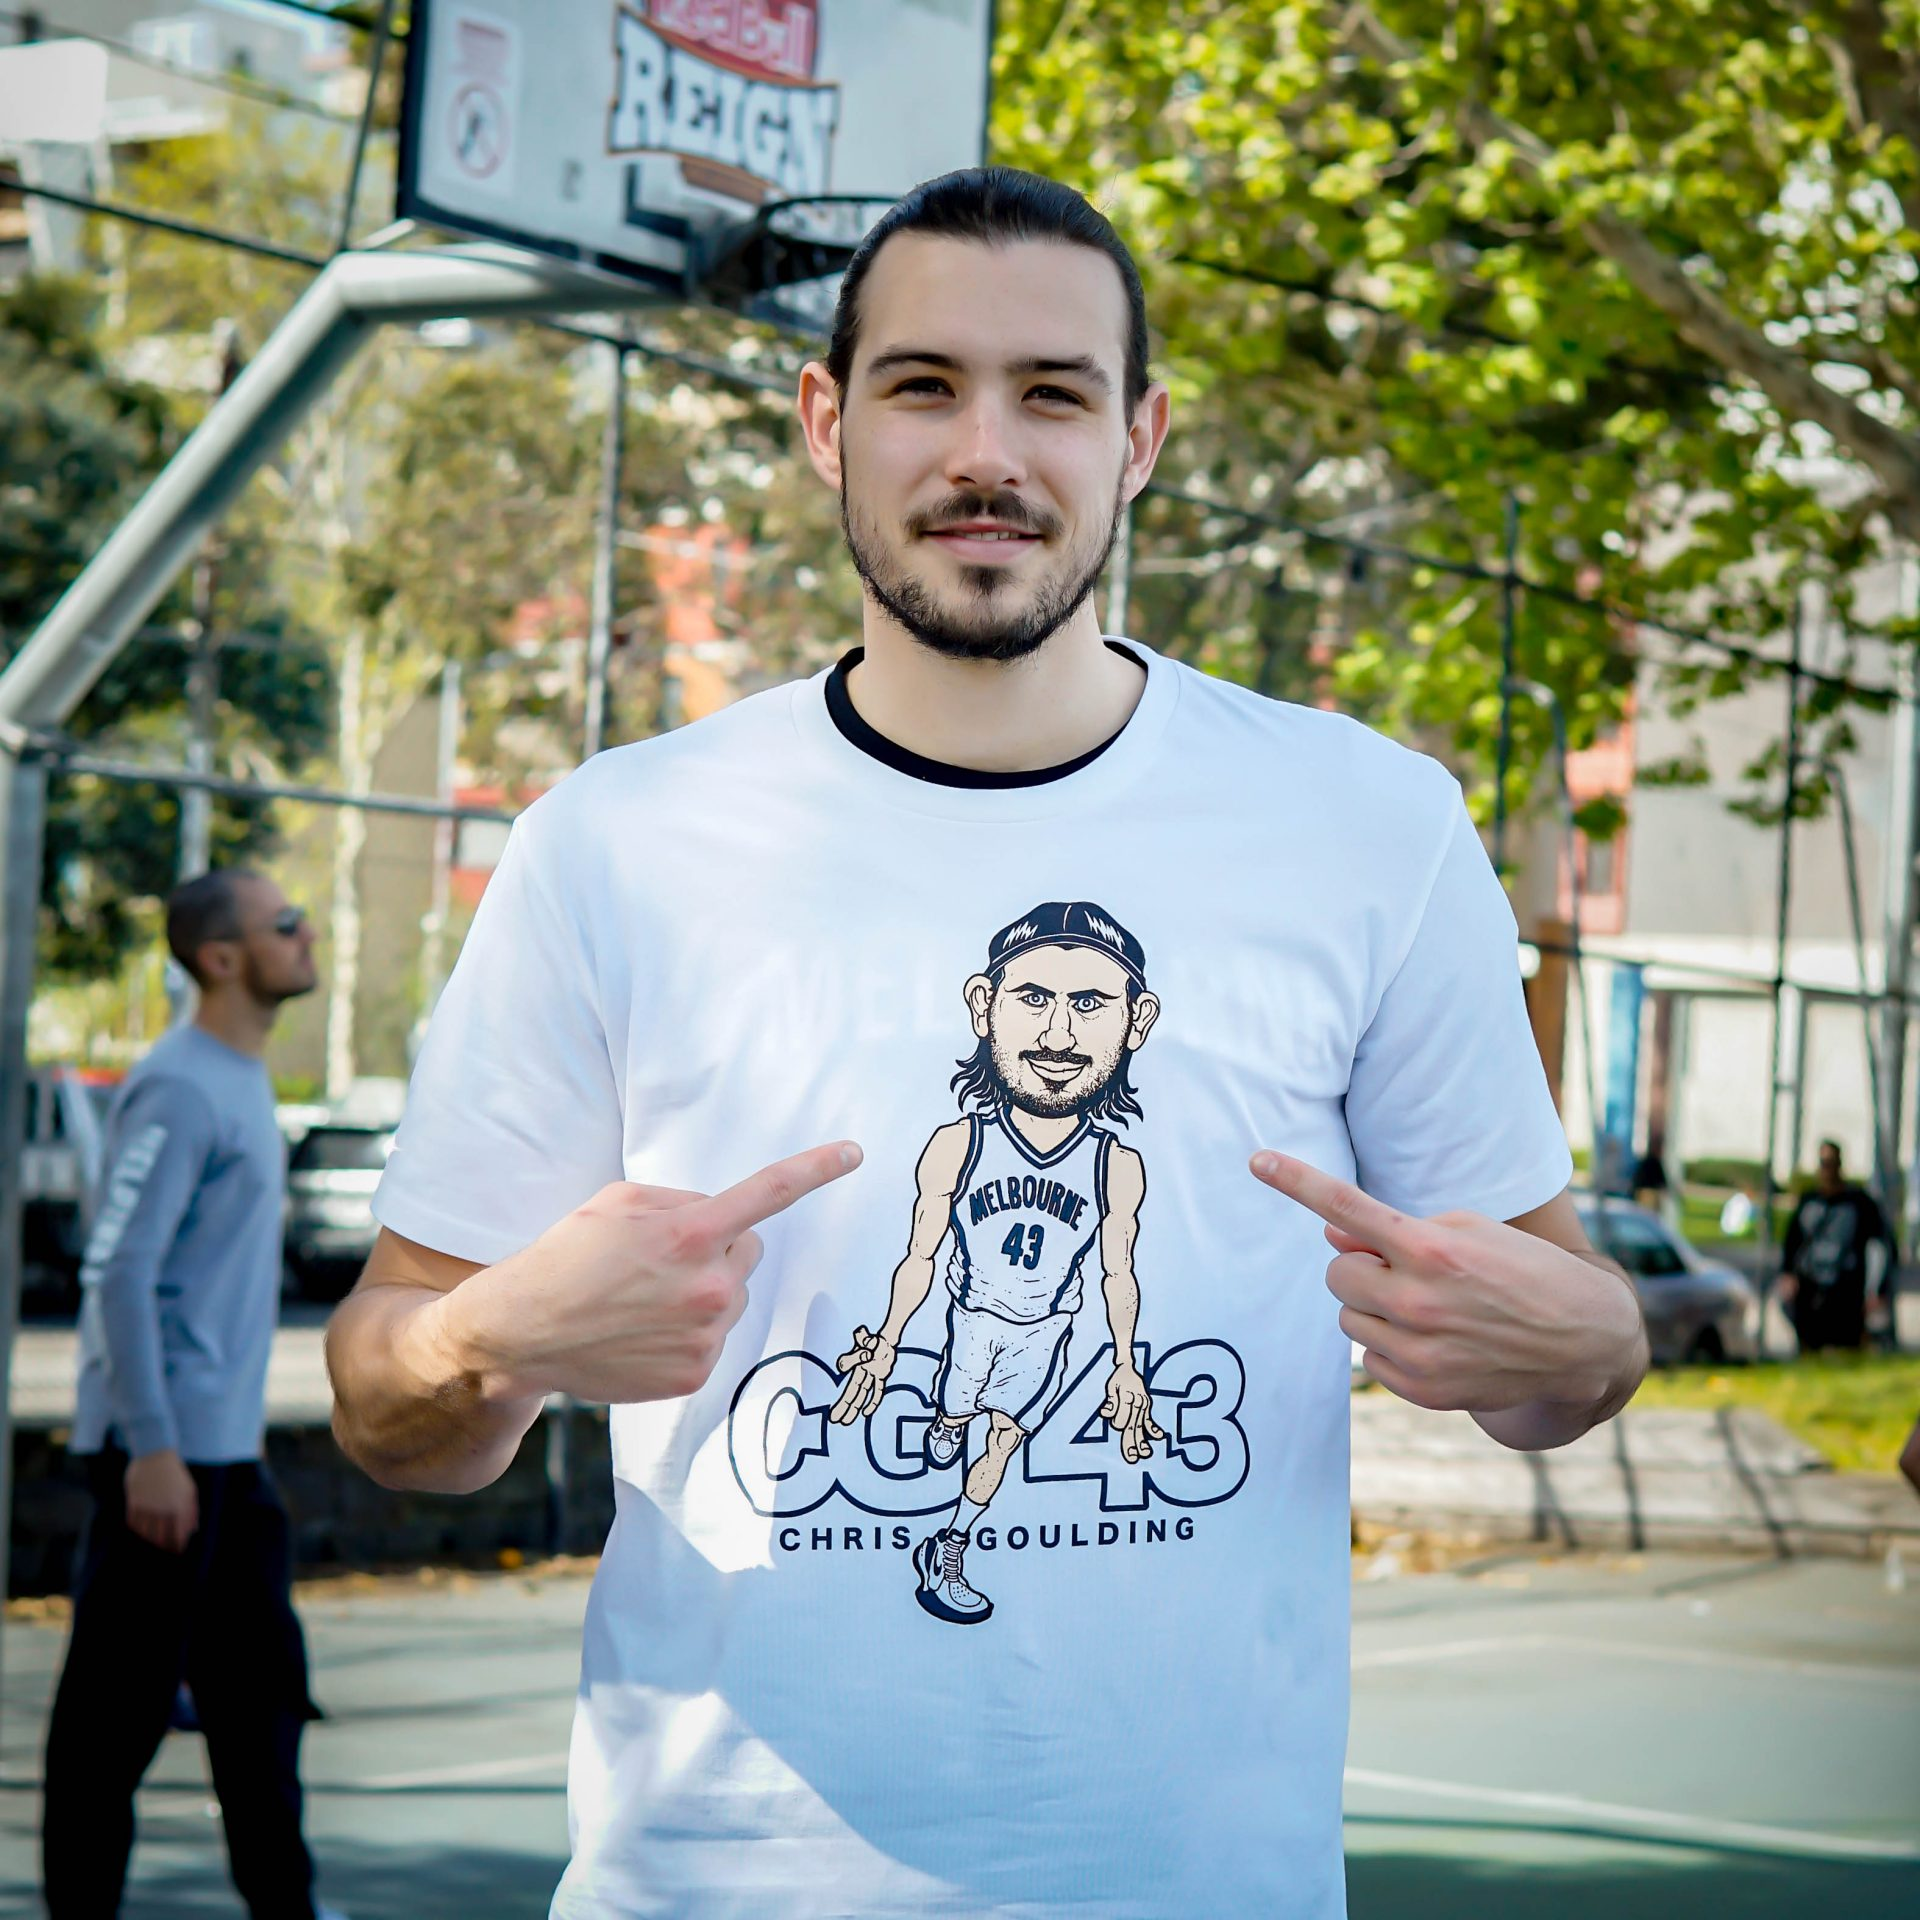 Chris Goulding T-Shirt Released